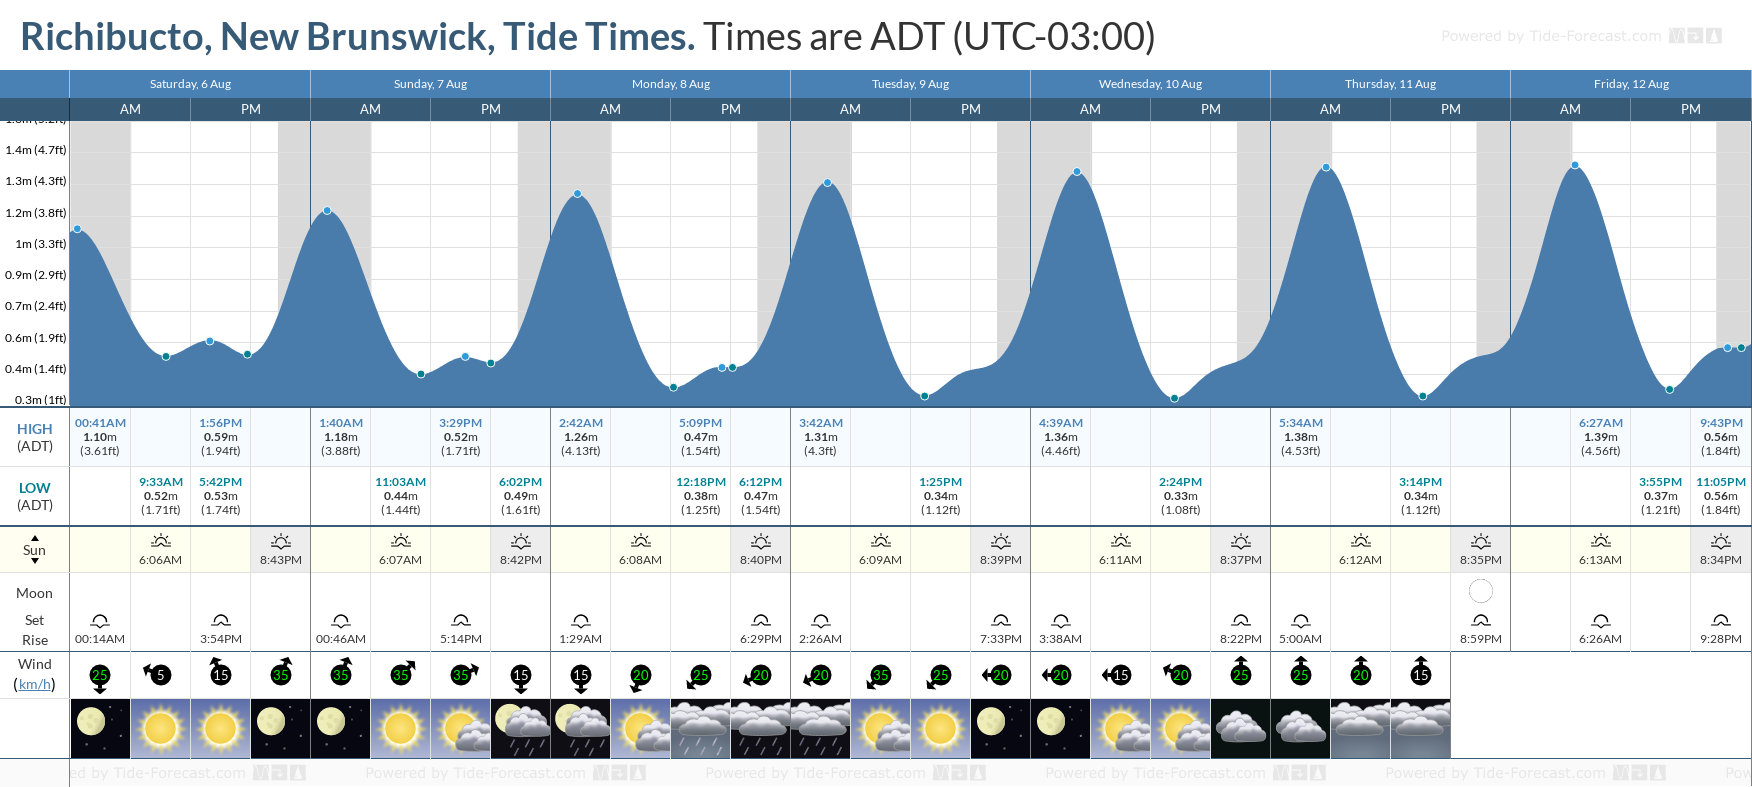 Richibucto, New Brunswick Tide Chart including high and low tide tide times for the next 7 days